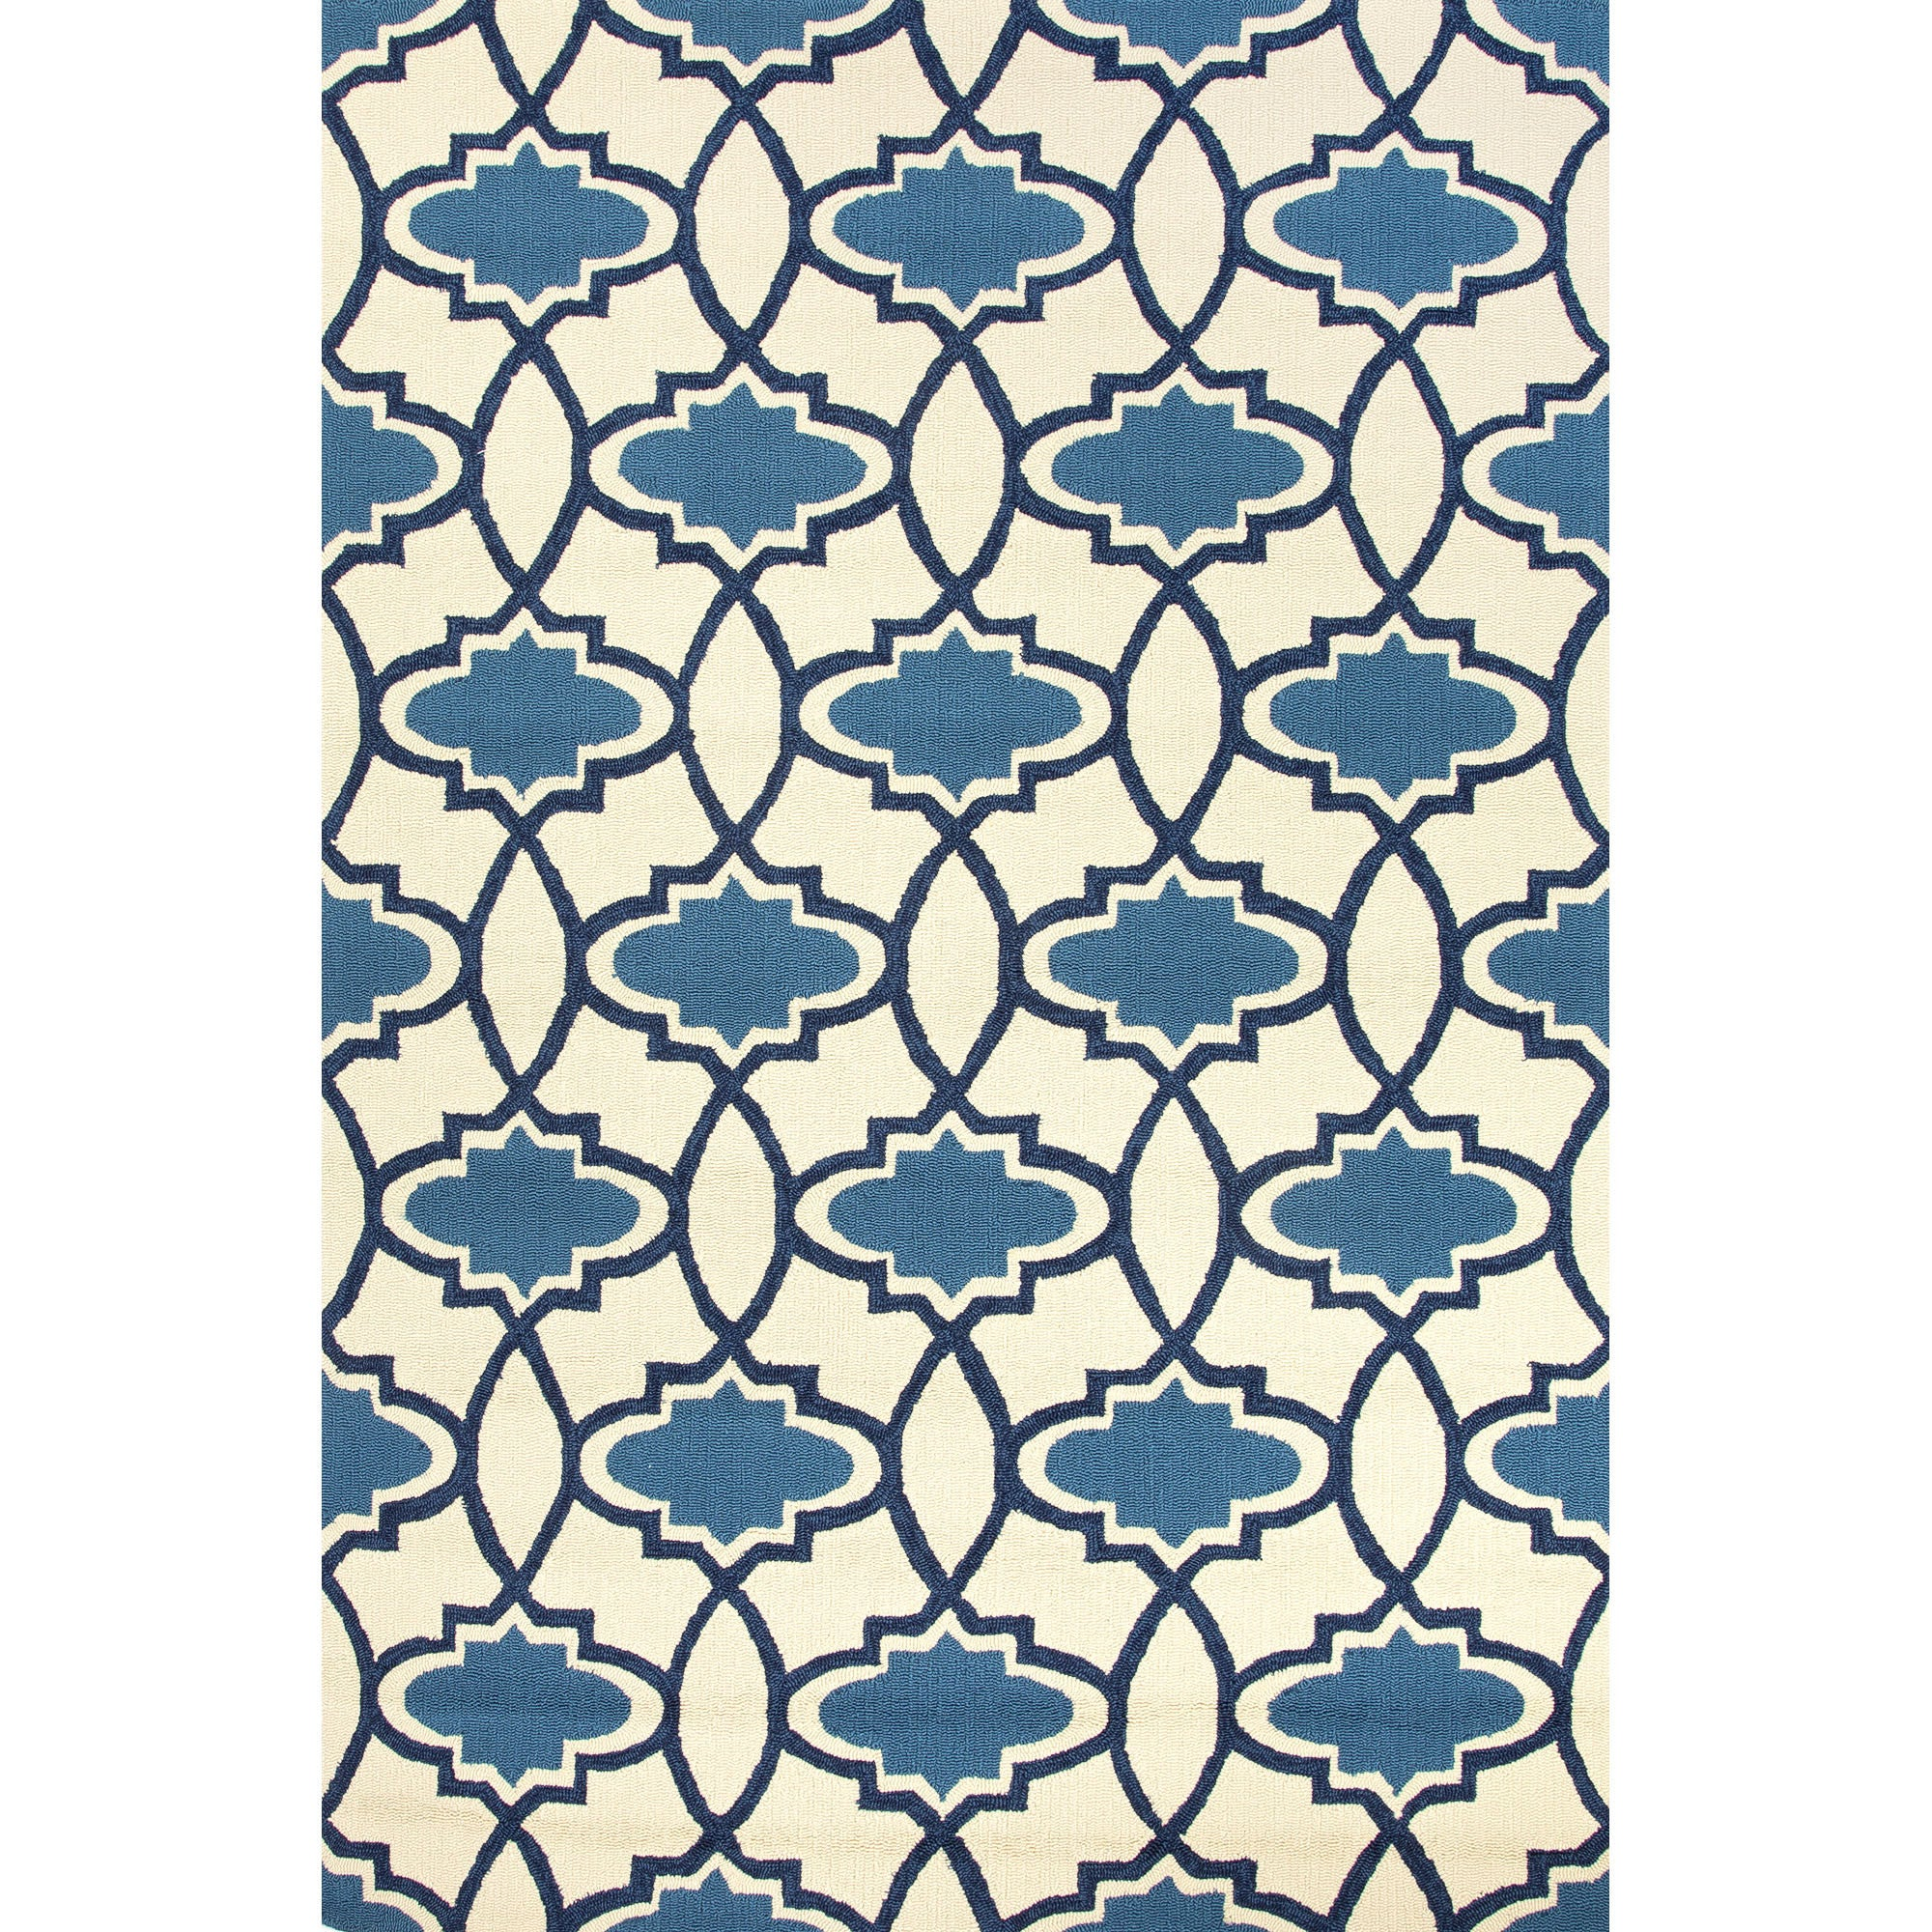 Jaipur Rugs Indoor-Outdoor Moroccan Pattern Blue/Ivory Polypropylene Area Rug